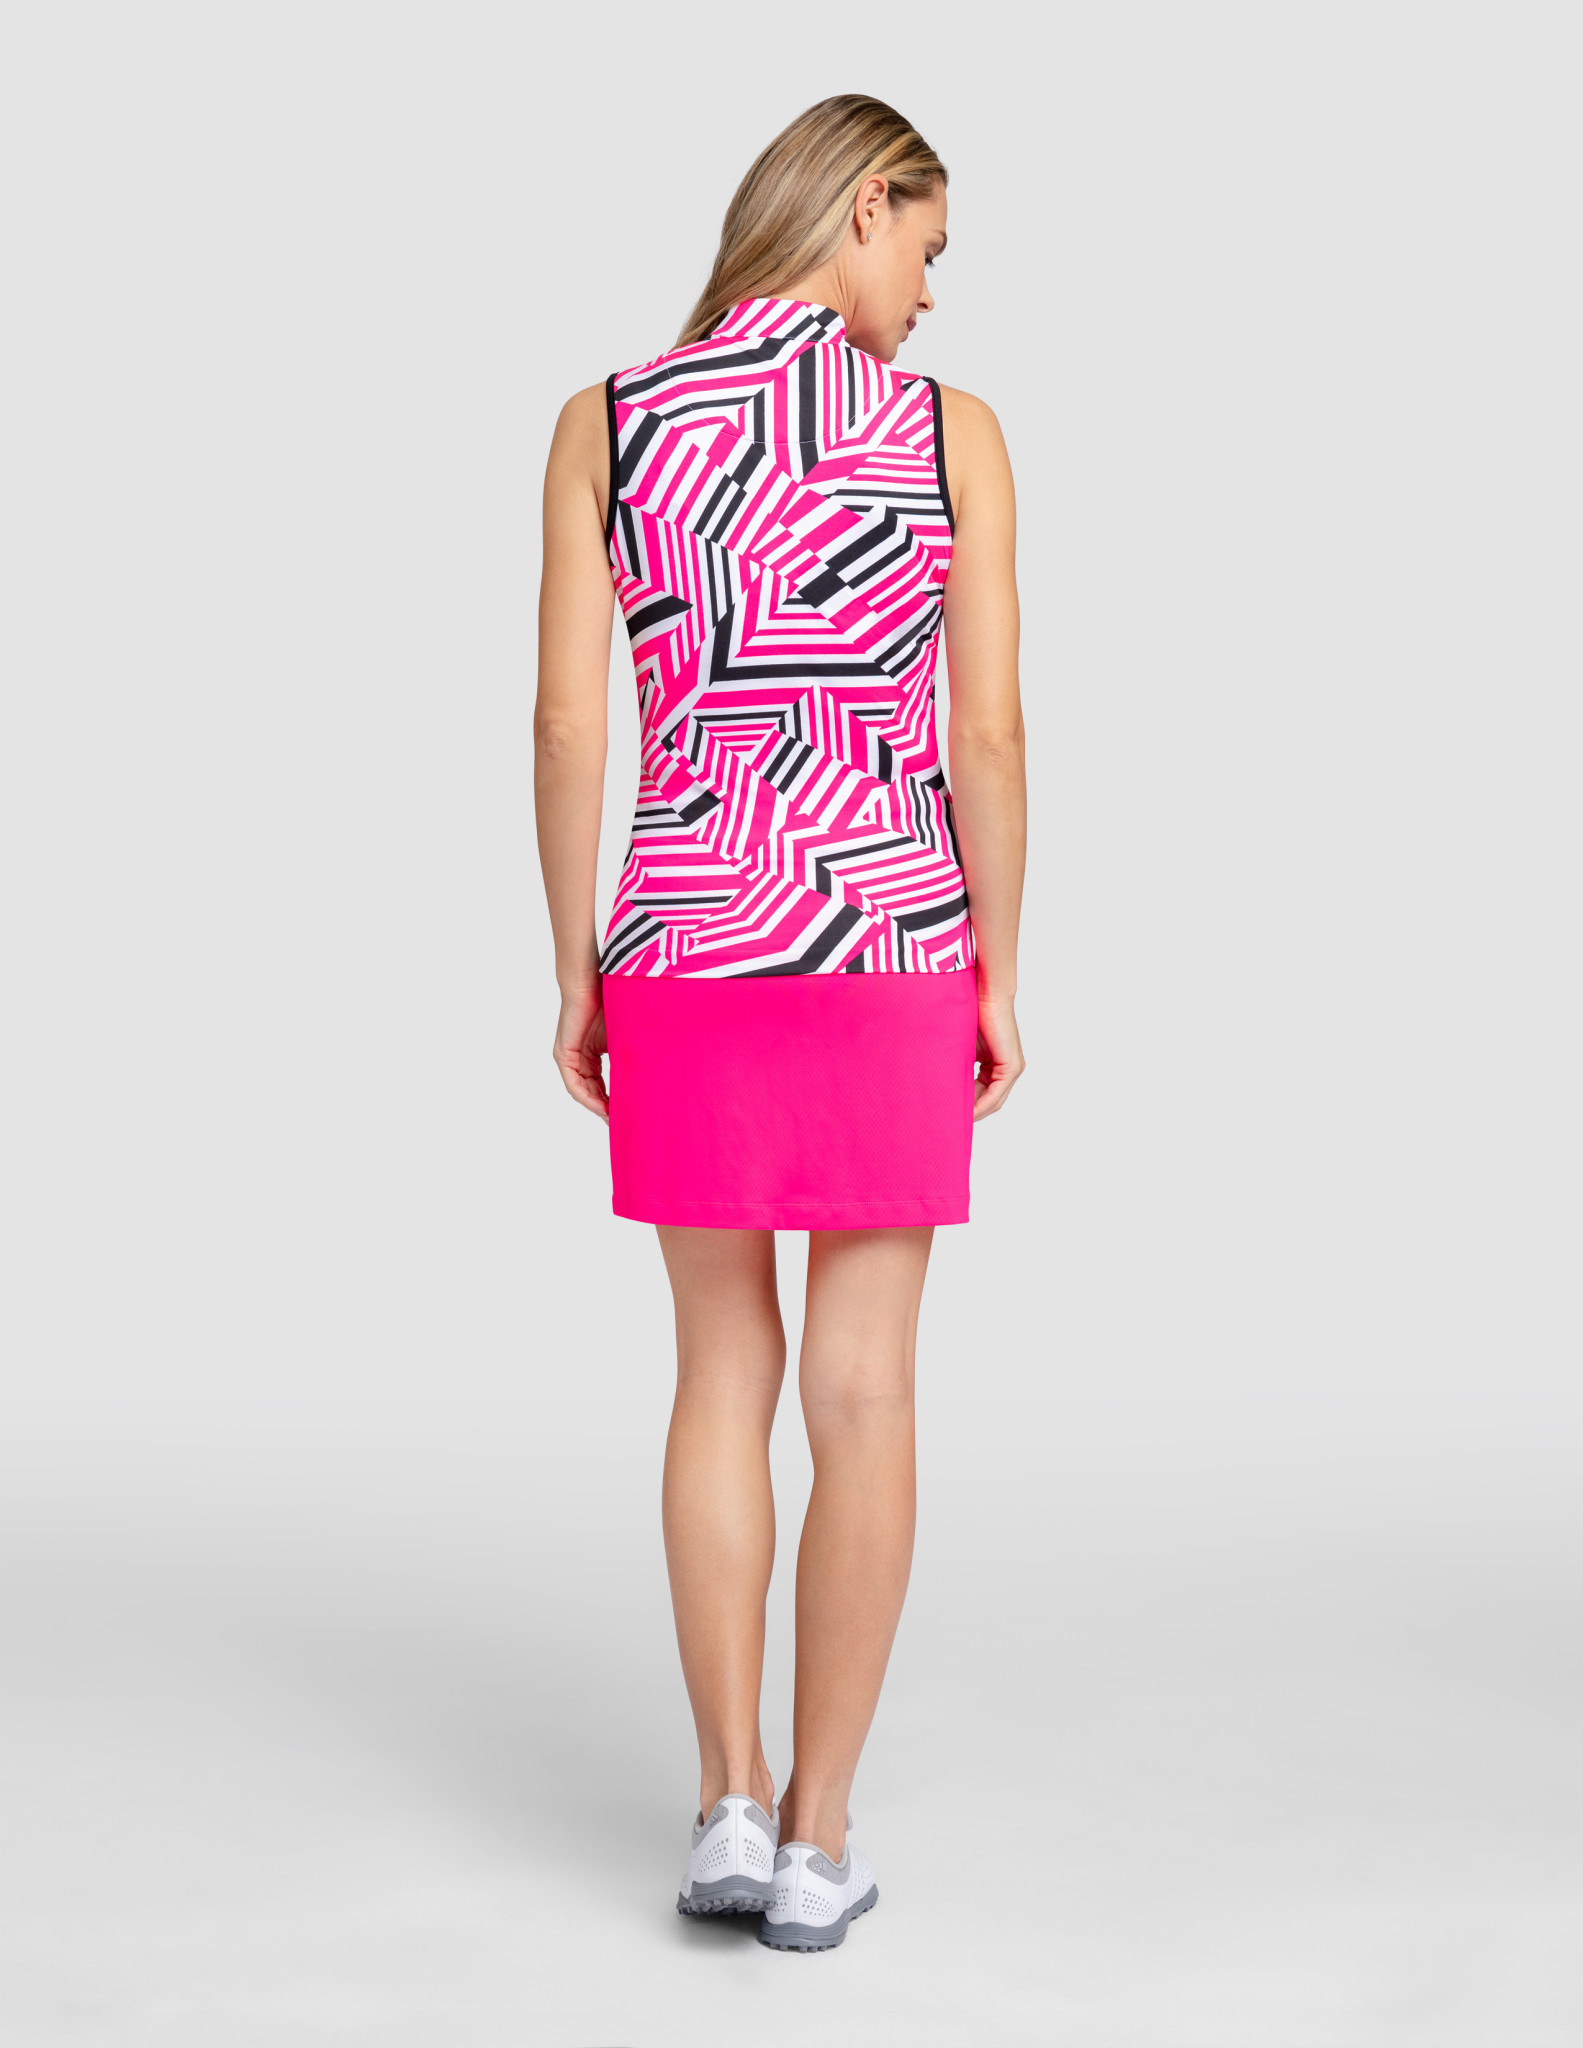 Tail Tail Jeanette Sleeveless Mock Accelerate